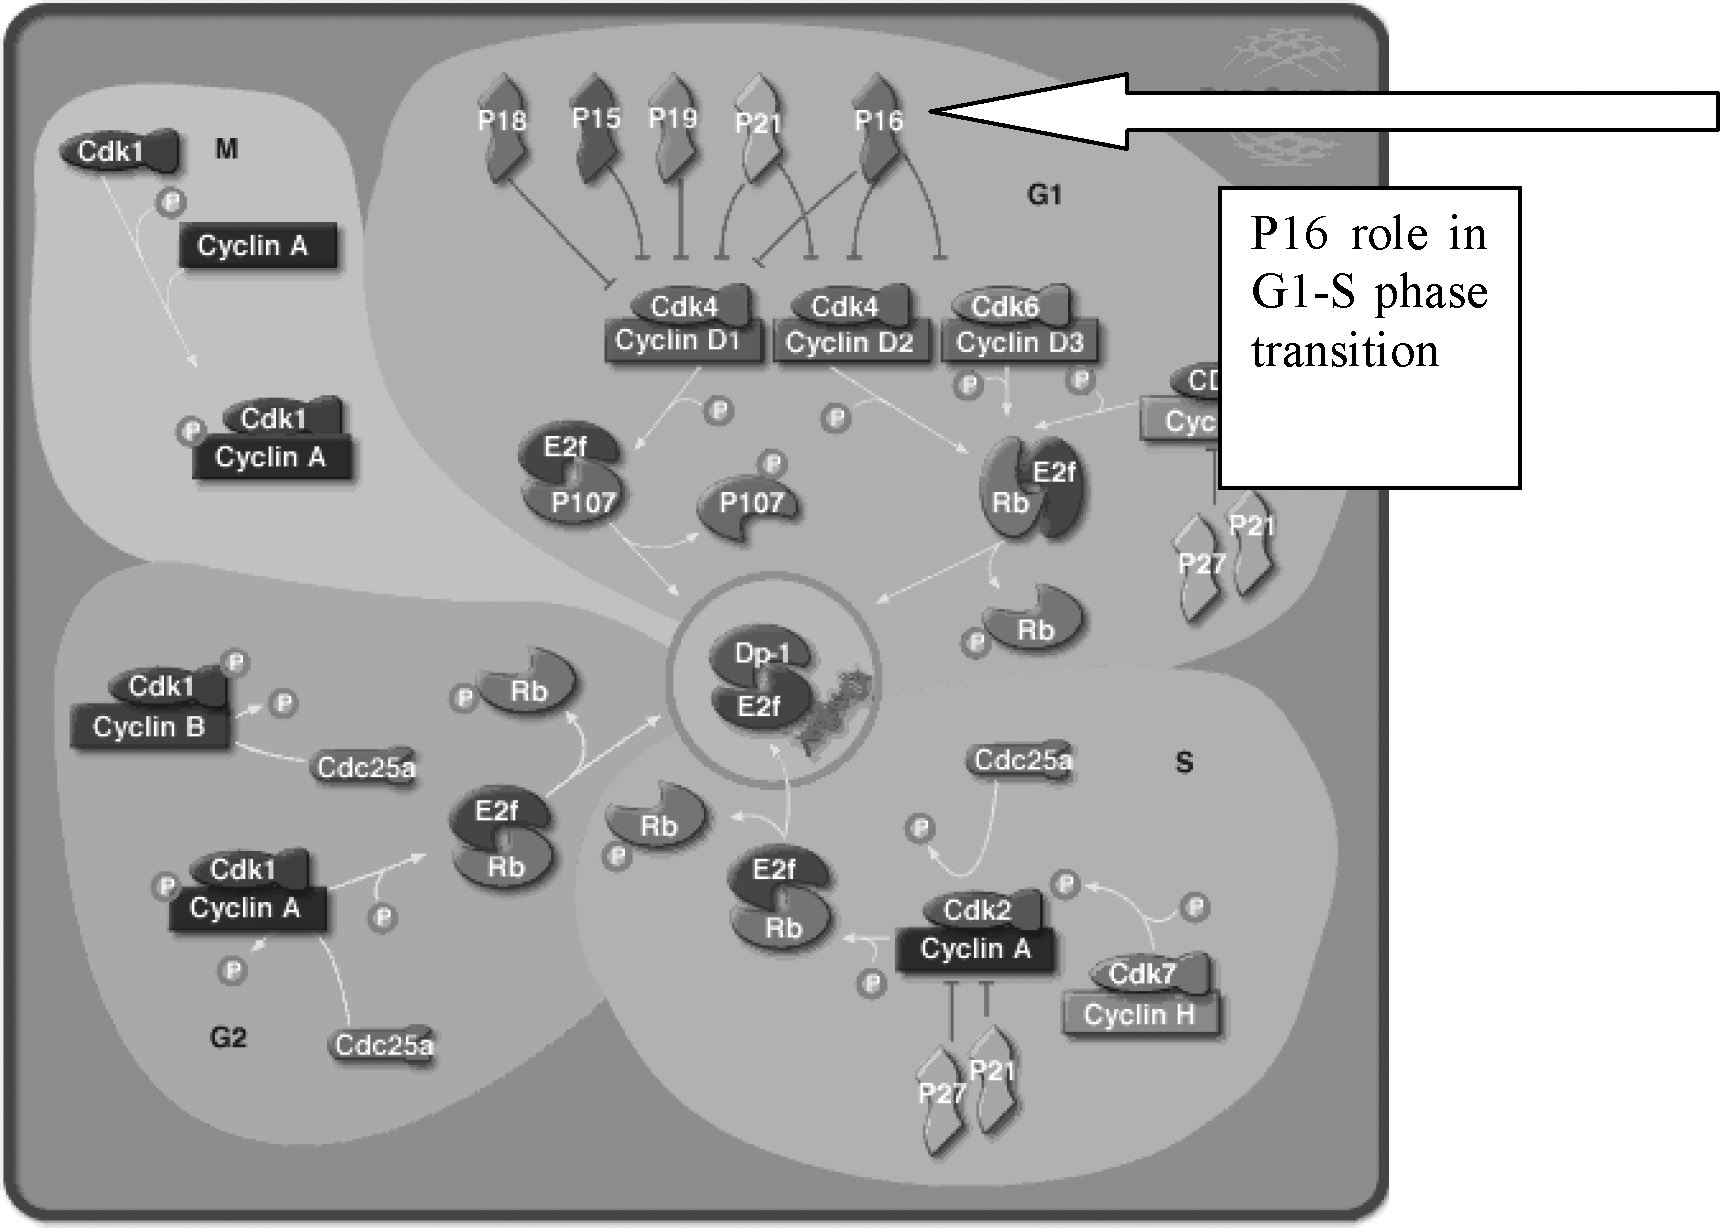 ASPARTAME: A SAFETY EVALUATION 725 FIG. 1. The role of p16 in the G1-S phase transition of the cell cycle (http://www.biocarta.com/pathfiles/m cellcyclepathway. asp).